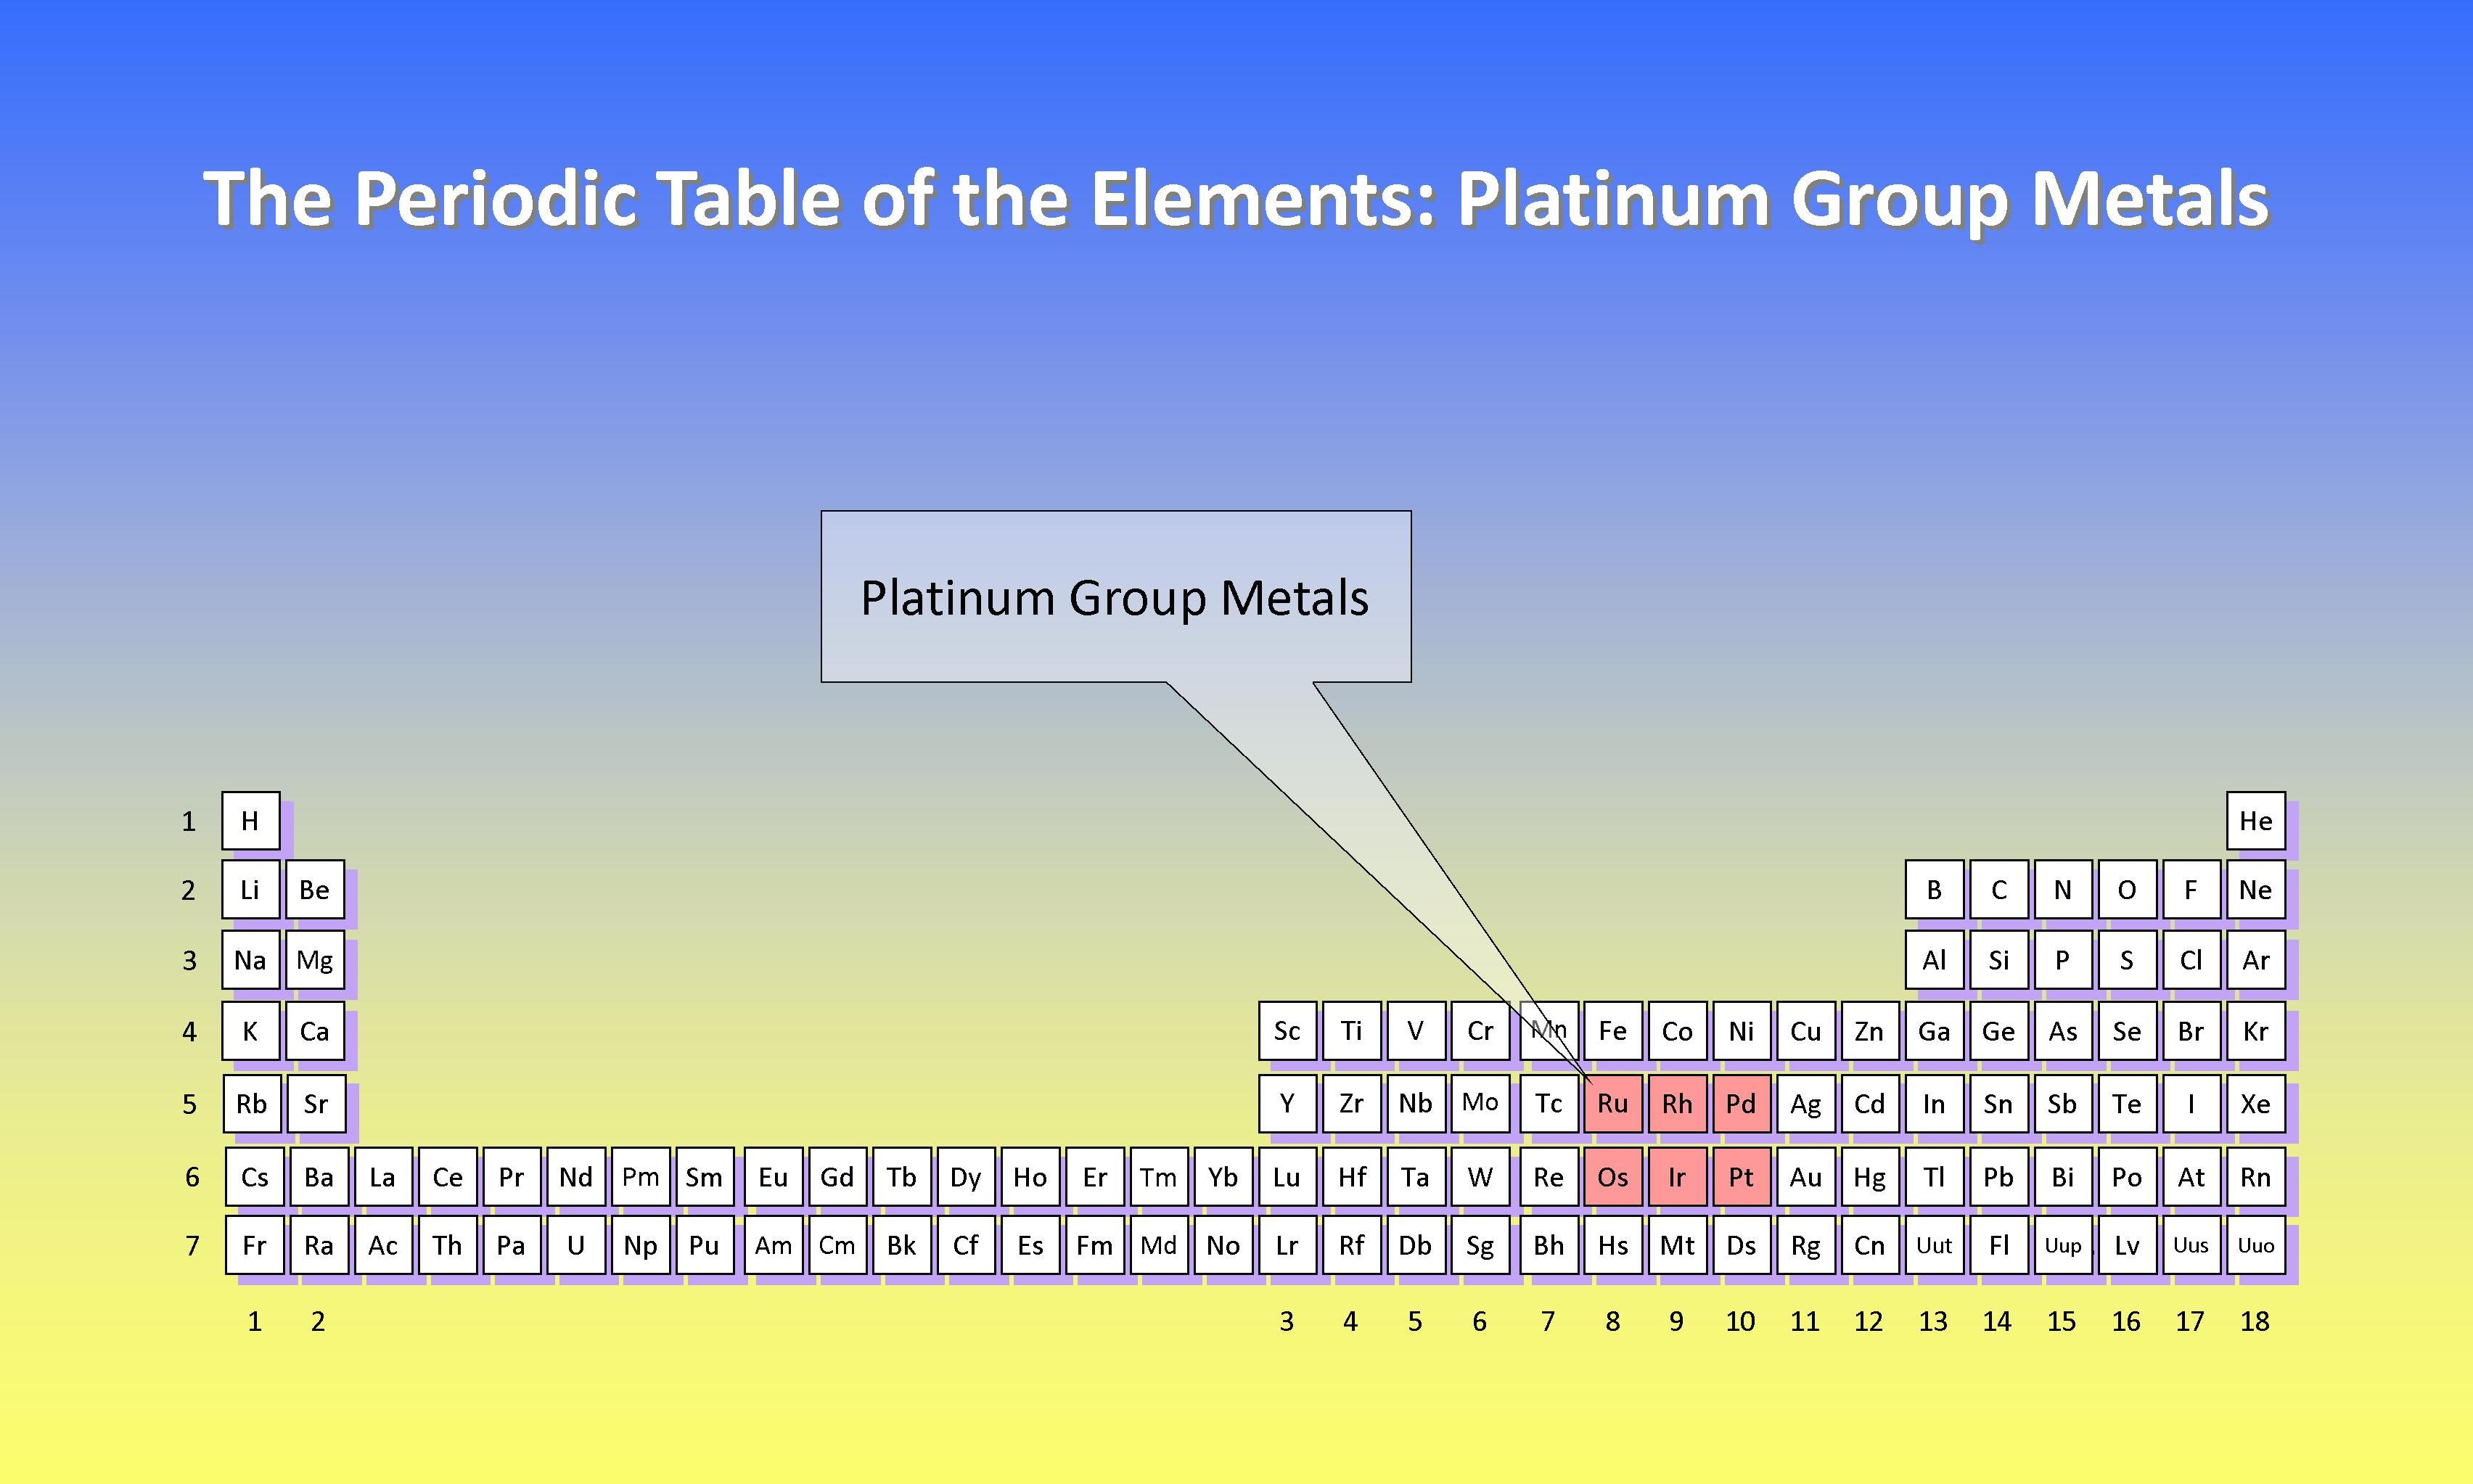 Platinum group metals geology for investors the location of the platinum group metals in the periodic table of the elements gamestrikefo Choice Image